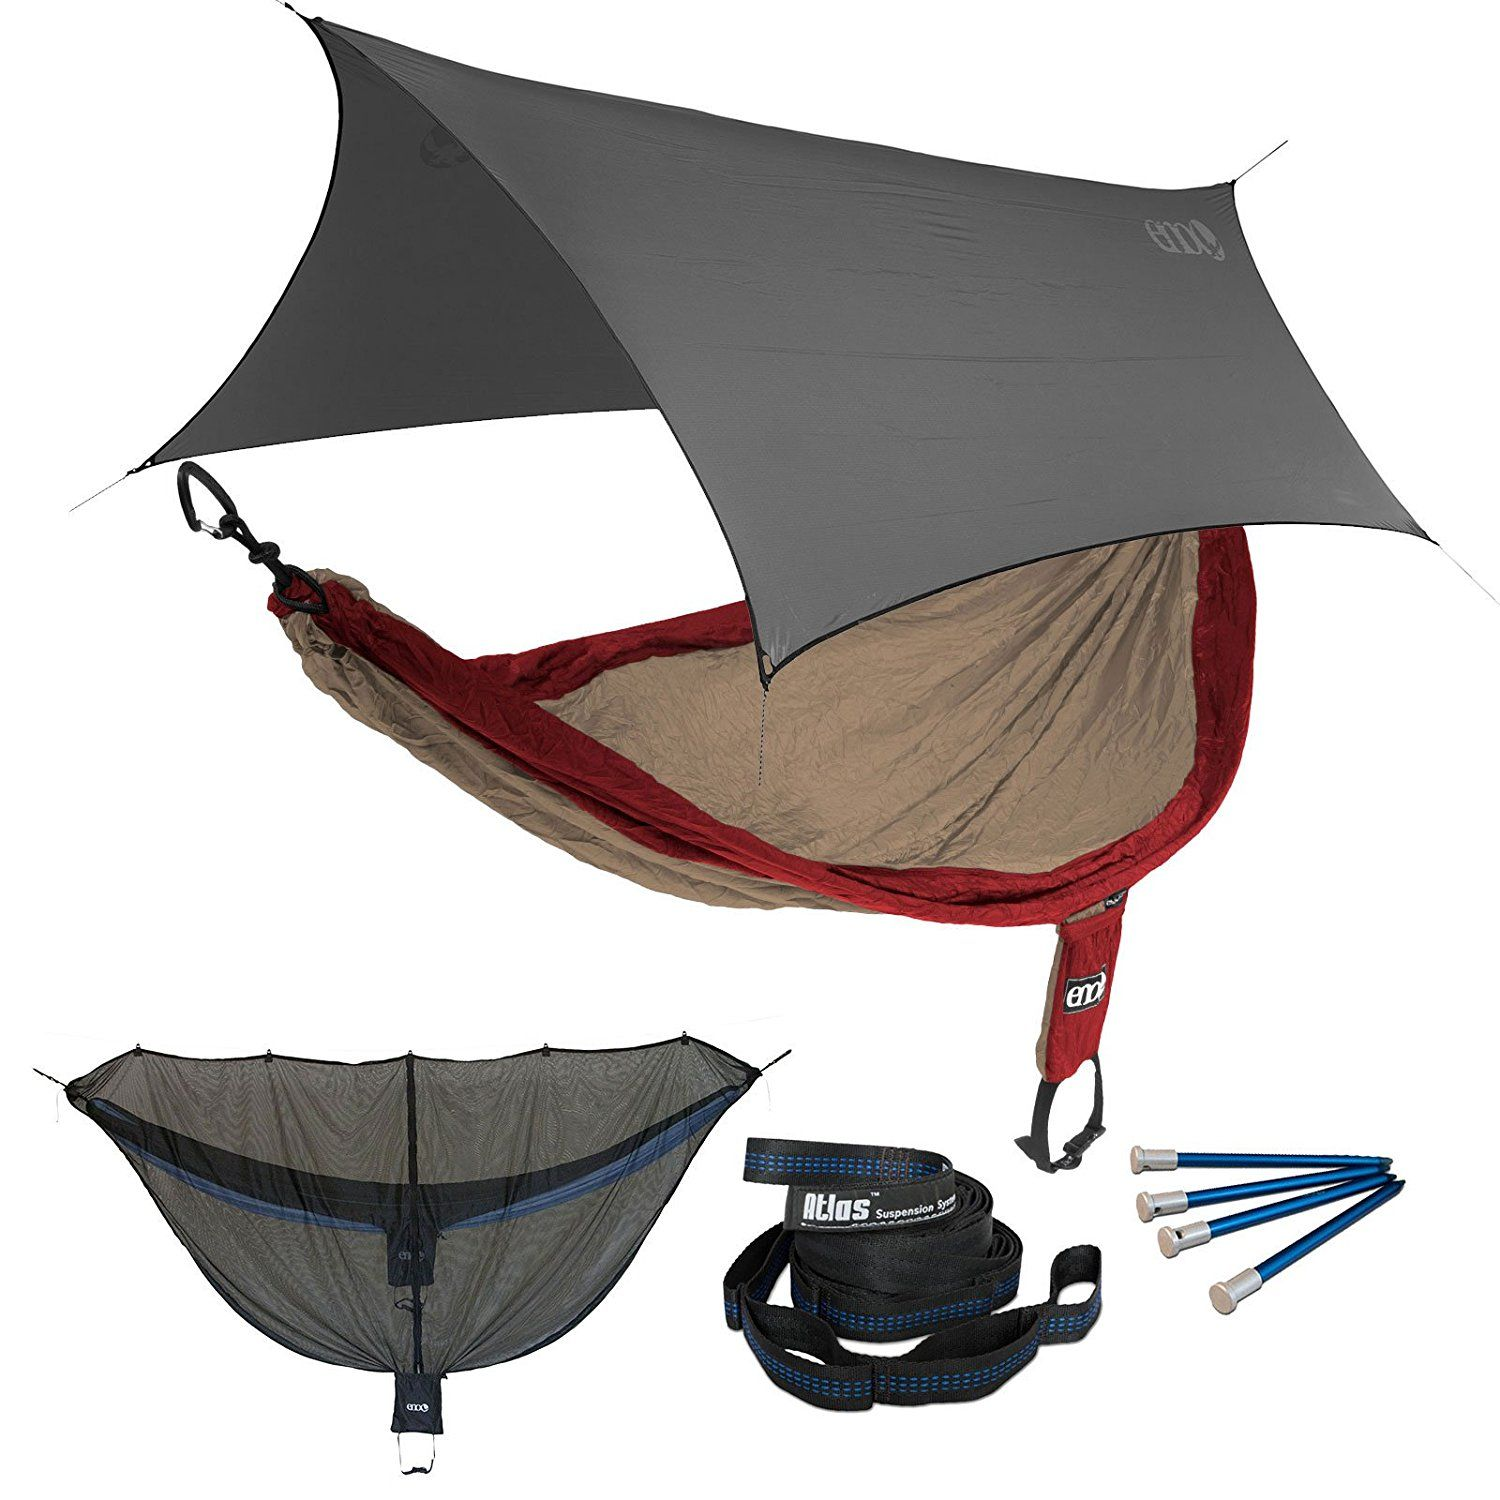 ENO SingleNest OneLink Sleep System - Tomato/Khaki Hammock With Grey Profly *** Find out more details by clicking the image : Camping Furniture